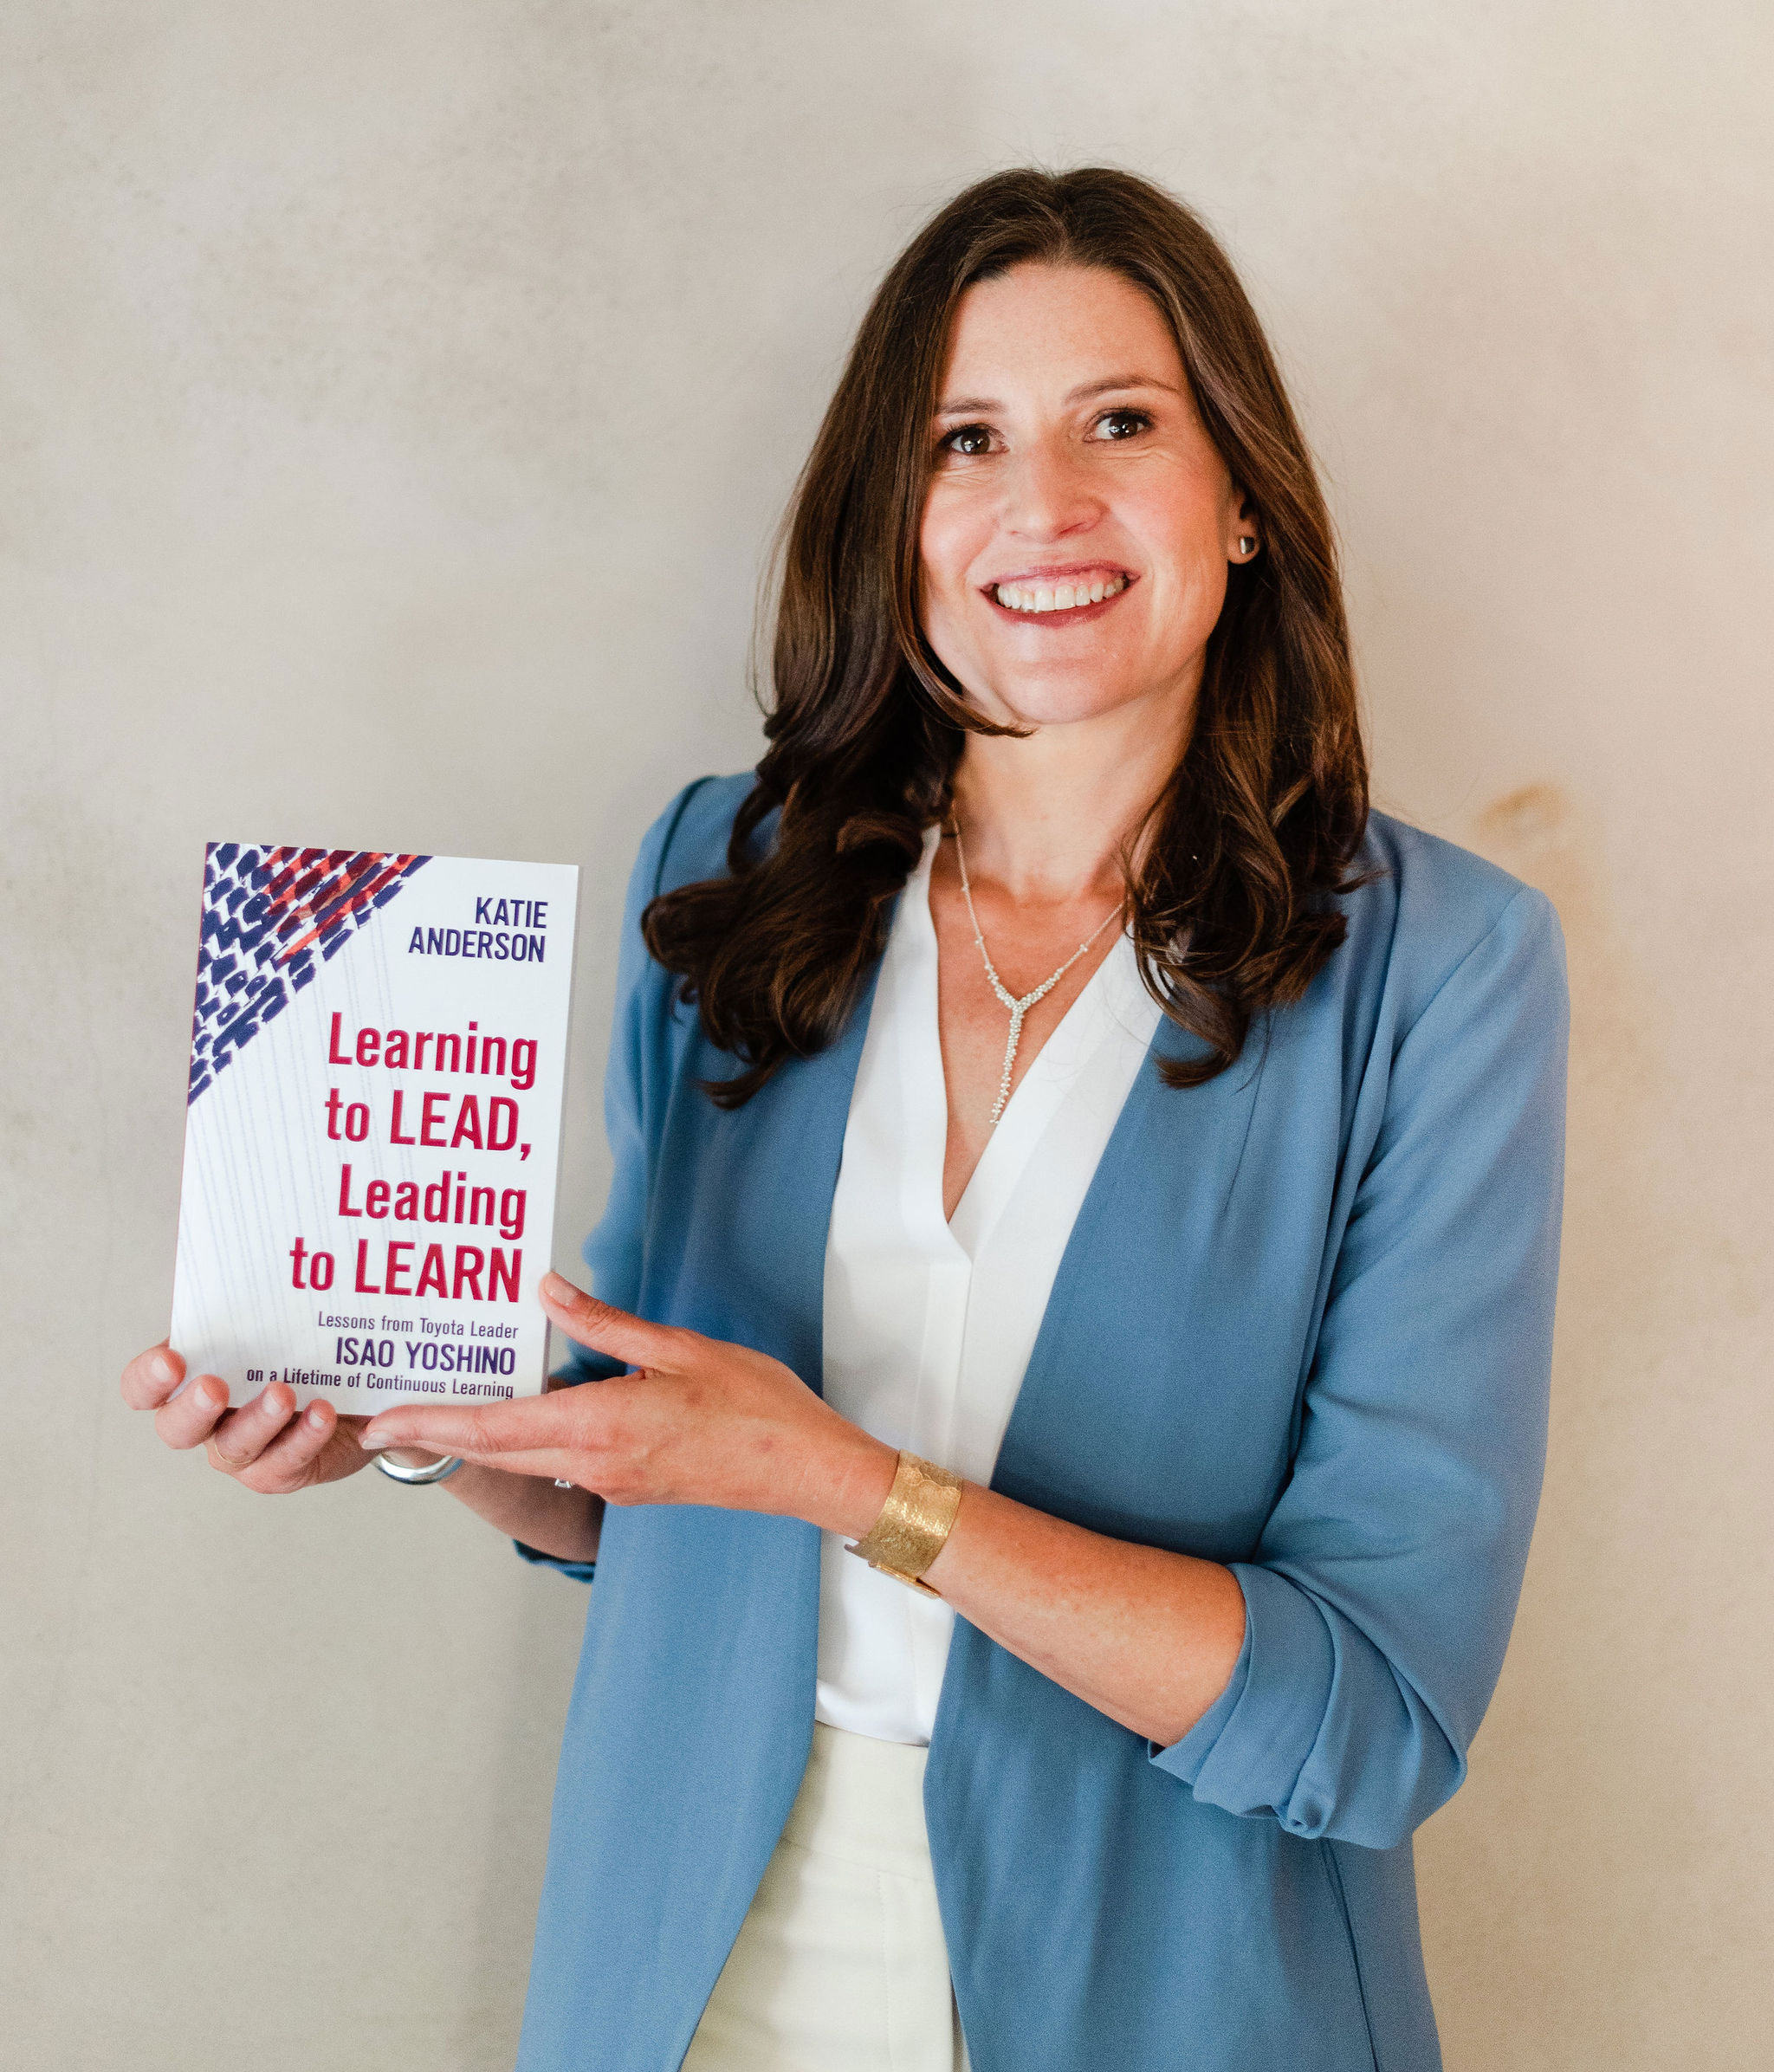 Katie Anderson holding the book on Leading to Learn Accelerator